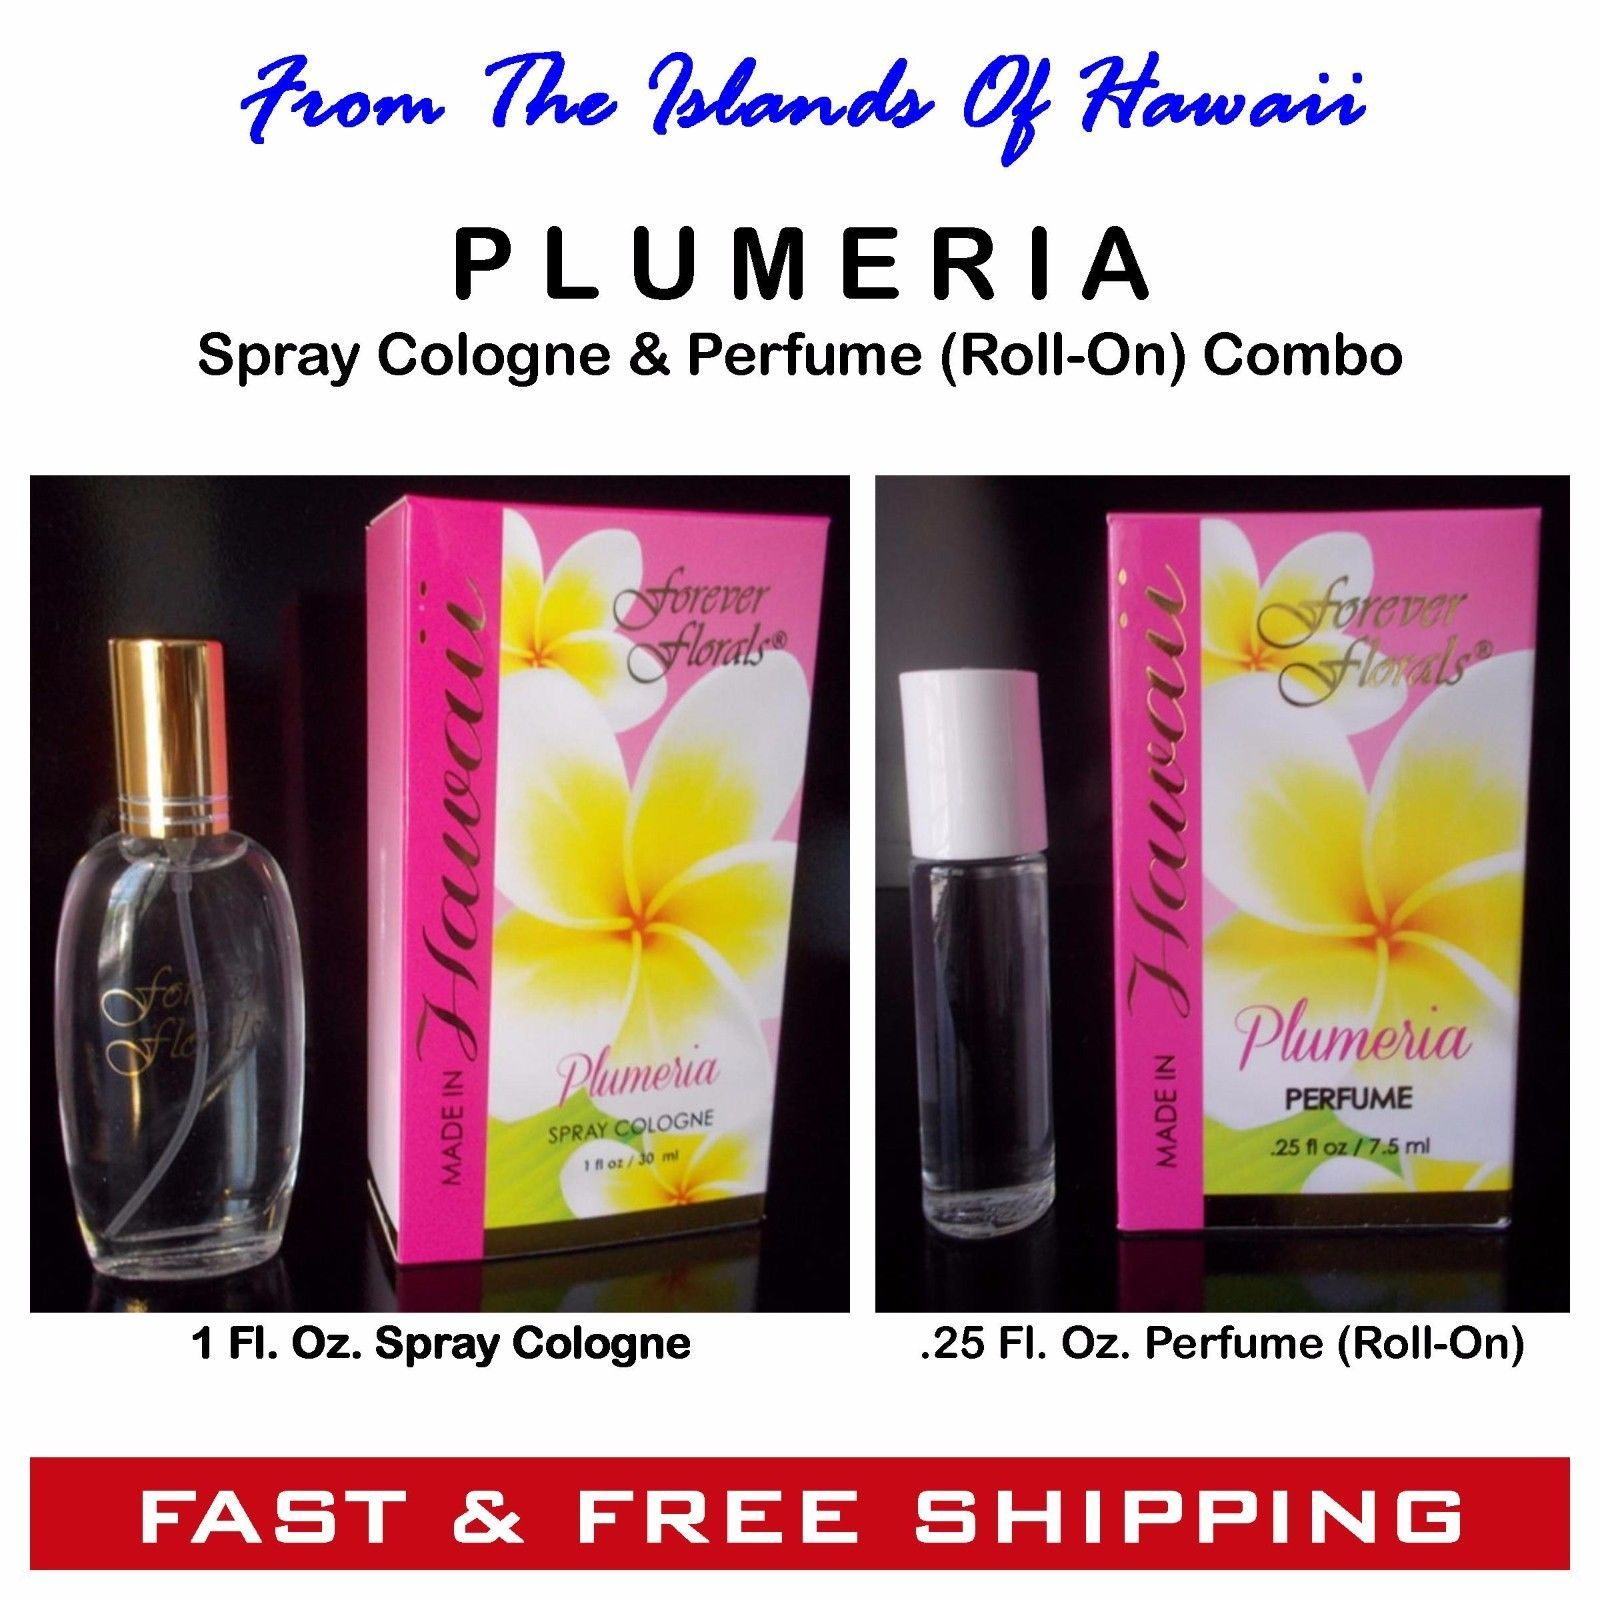 Plumeria Spray Cologne Perfume Roll On Combo By Forever Florals Free Ship Roll On Perfume Bottle Cologne